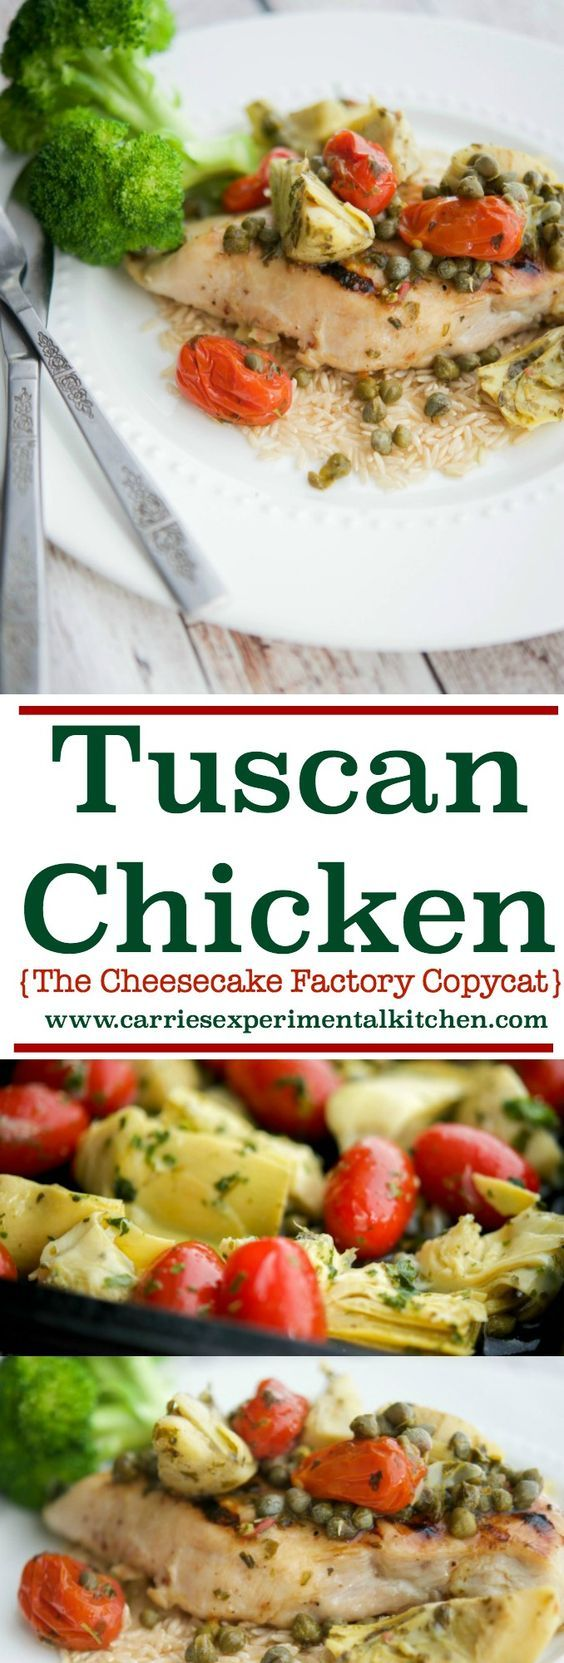 Just because The Cheesecake Factory has this Tuscan Chicken on their Skinnylicious menu, it is loaded with so many fresh, Mediterranean flavors you will not miss all of the extra calories. Learn how to make this popular restaurant entree at home.